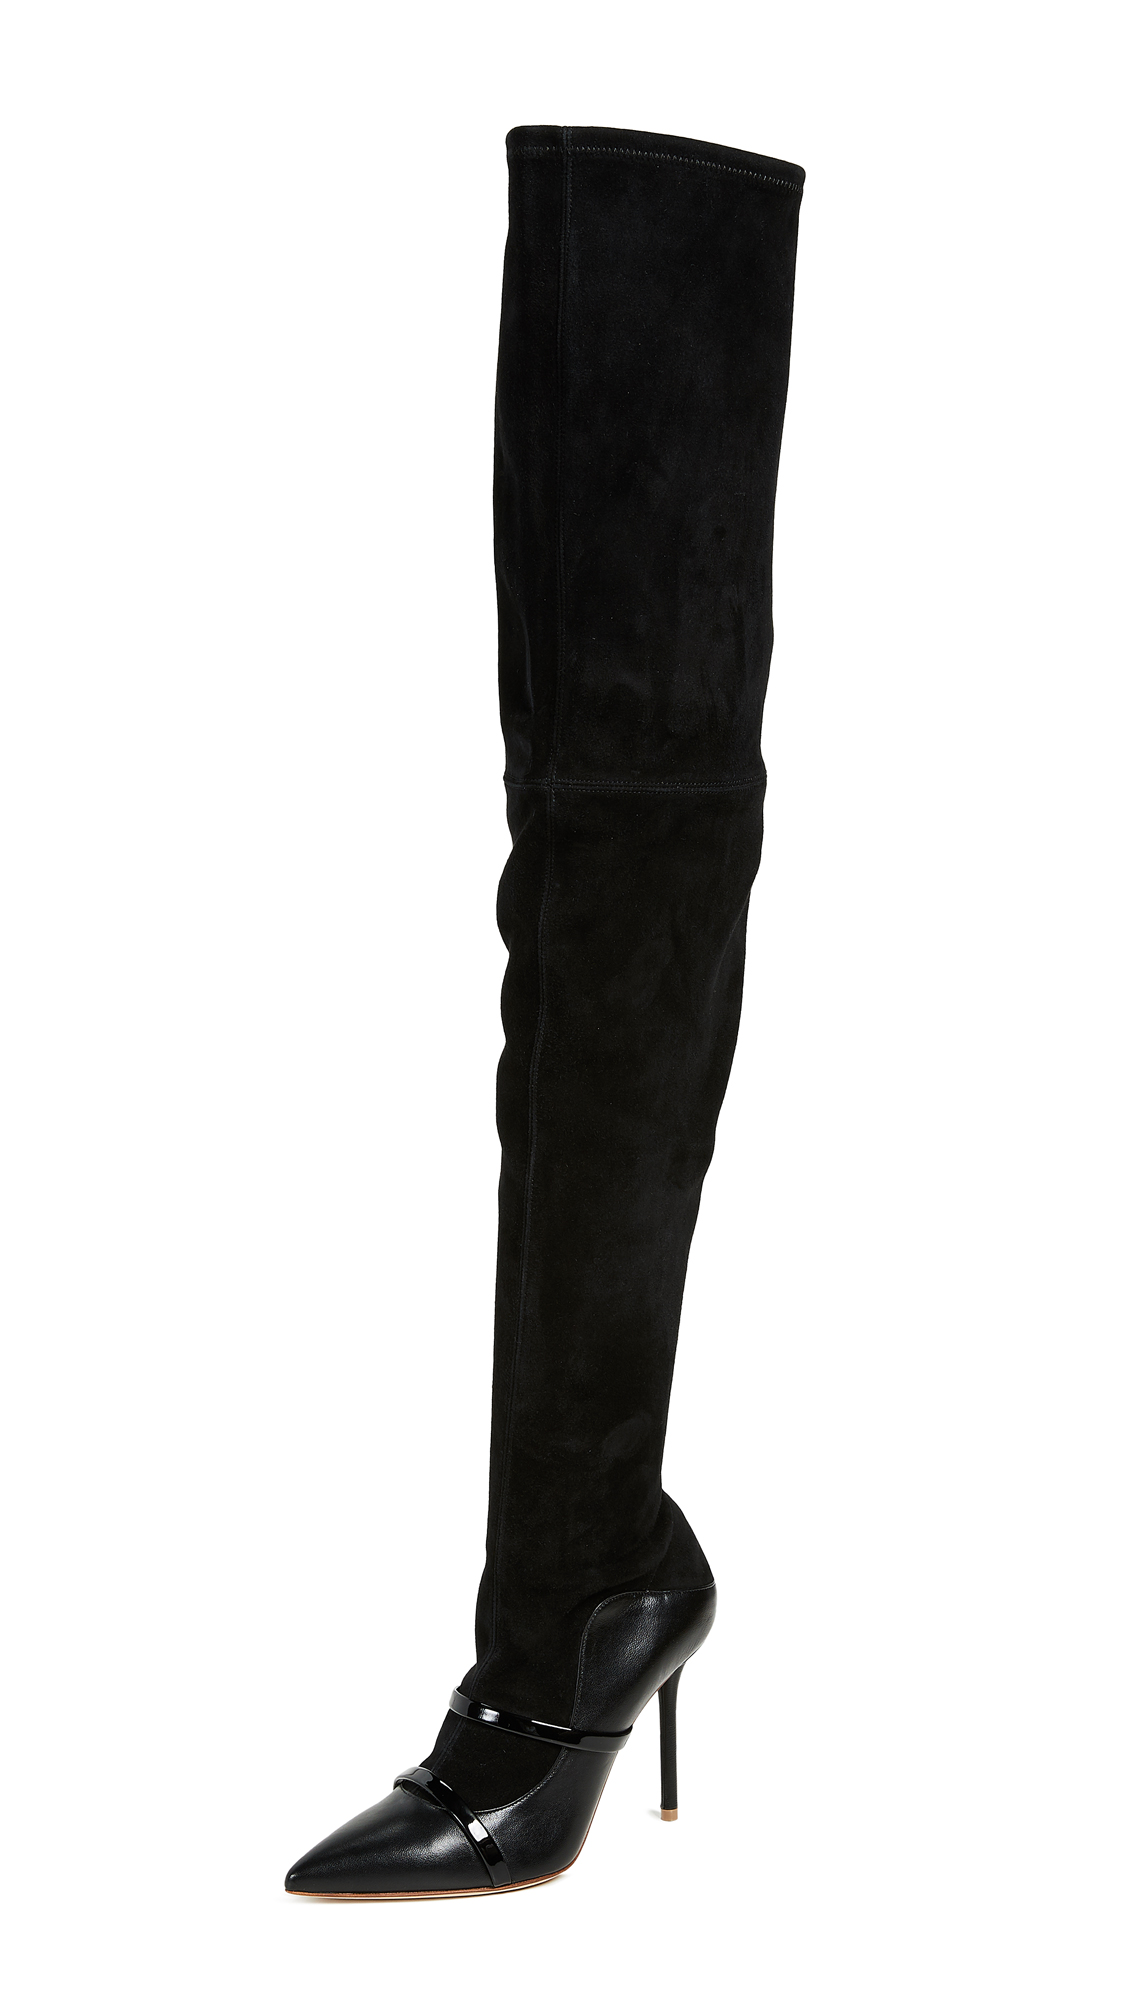 Malone Souliers by Roy Luwolt Madison Over the Knee Boots - Black/Black